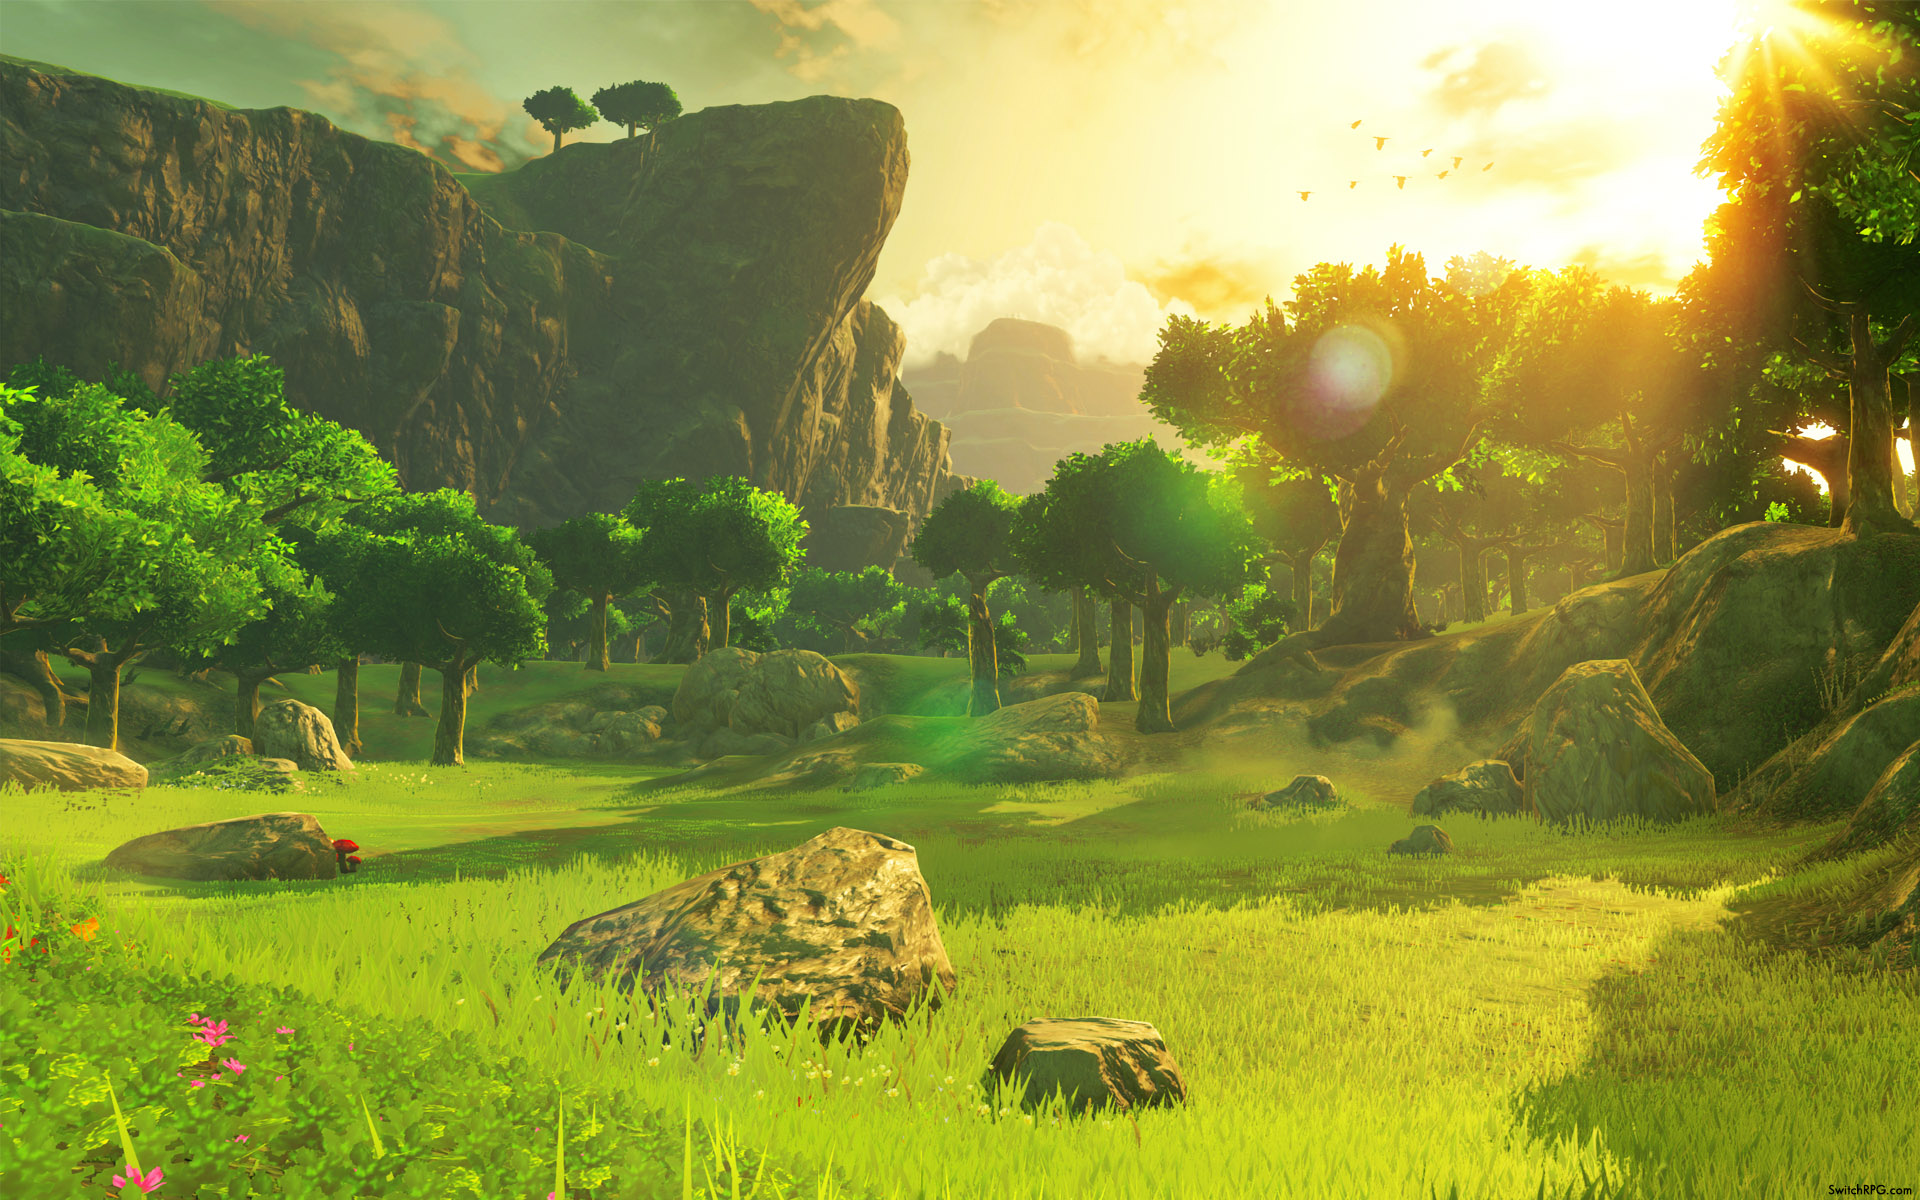 Breath Of The Wild Desktop Wallpaper: Zelda: Breath Of The Wild Scenic Desktop Wallpaper